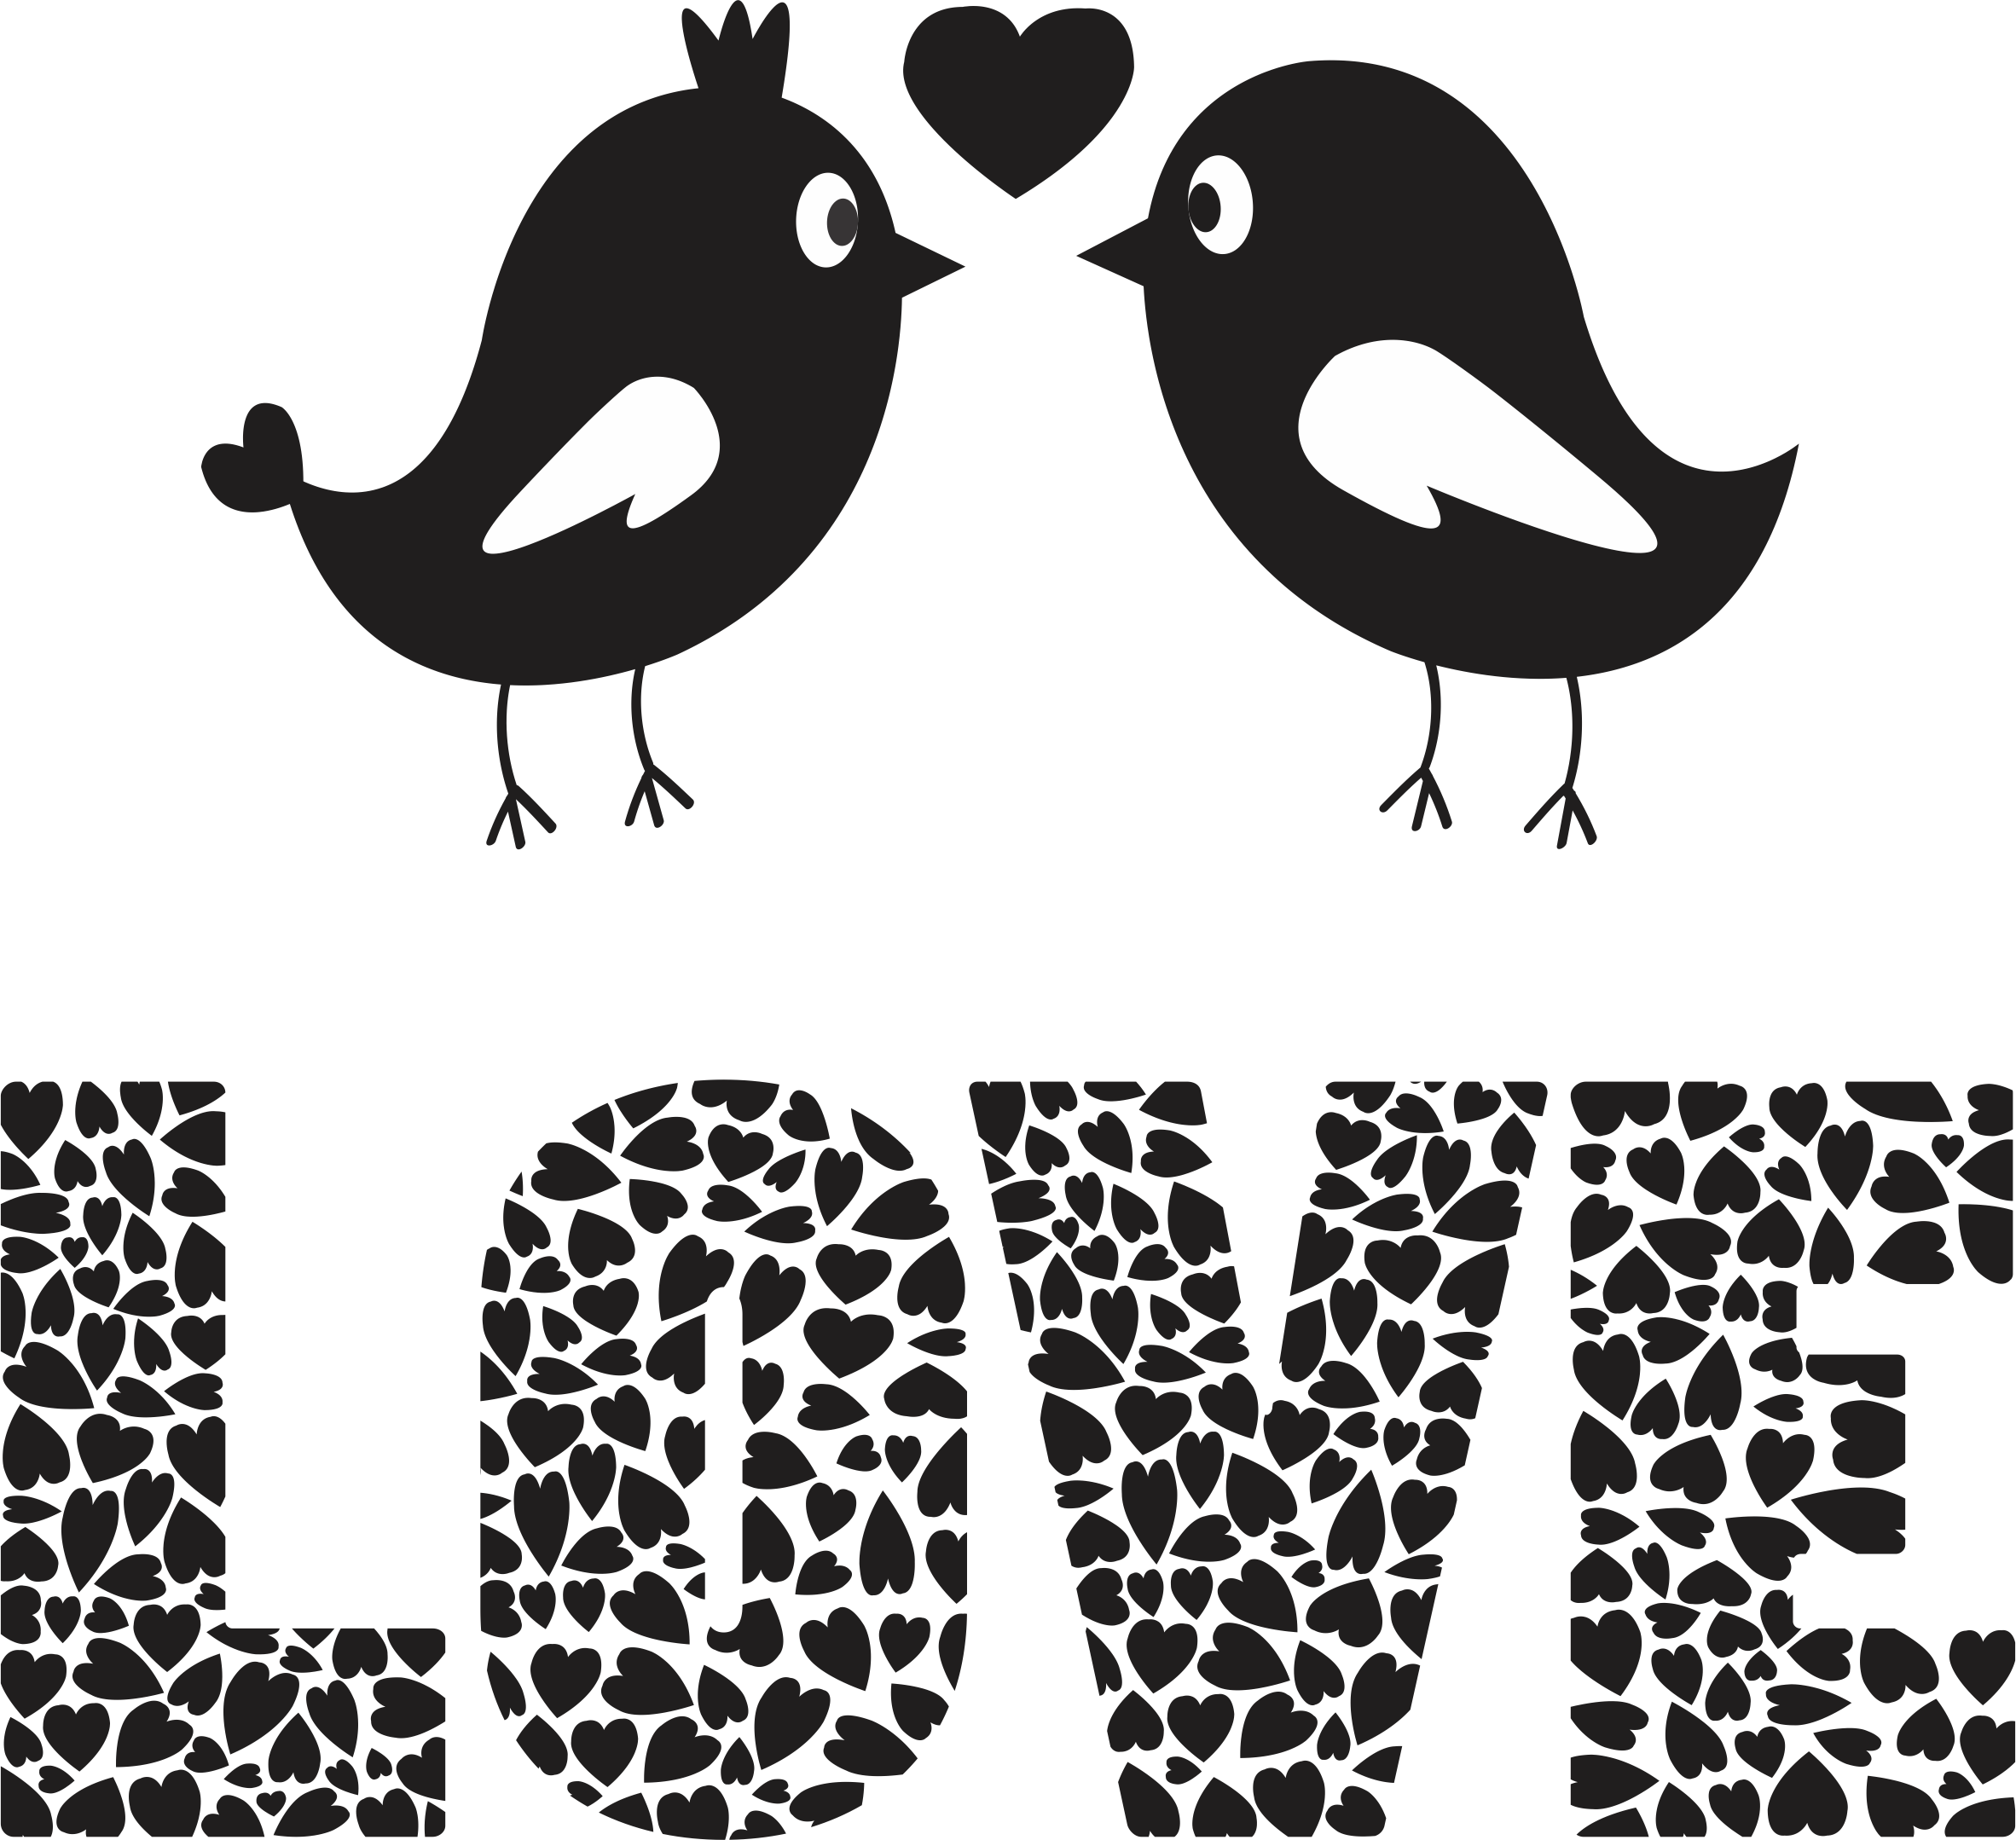 Download Love Birds Png Image Love Birds Black And White Full Size Png Image Pngkit